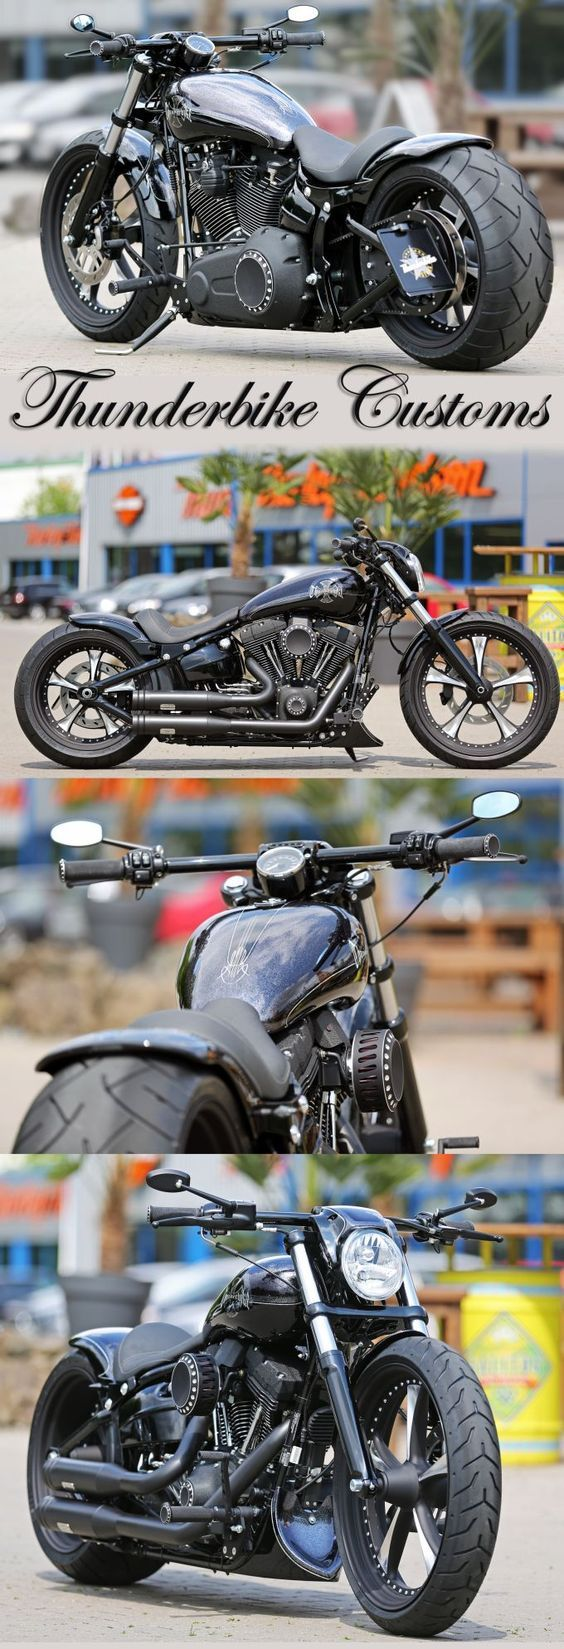 Breakout Pictures - Page 32 - Harley Davidson Forums: